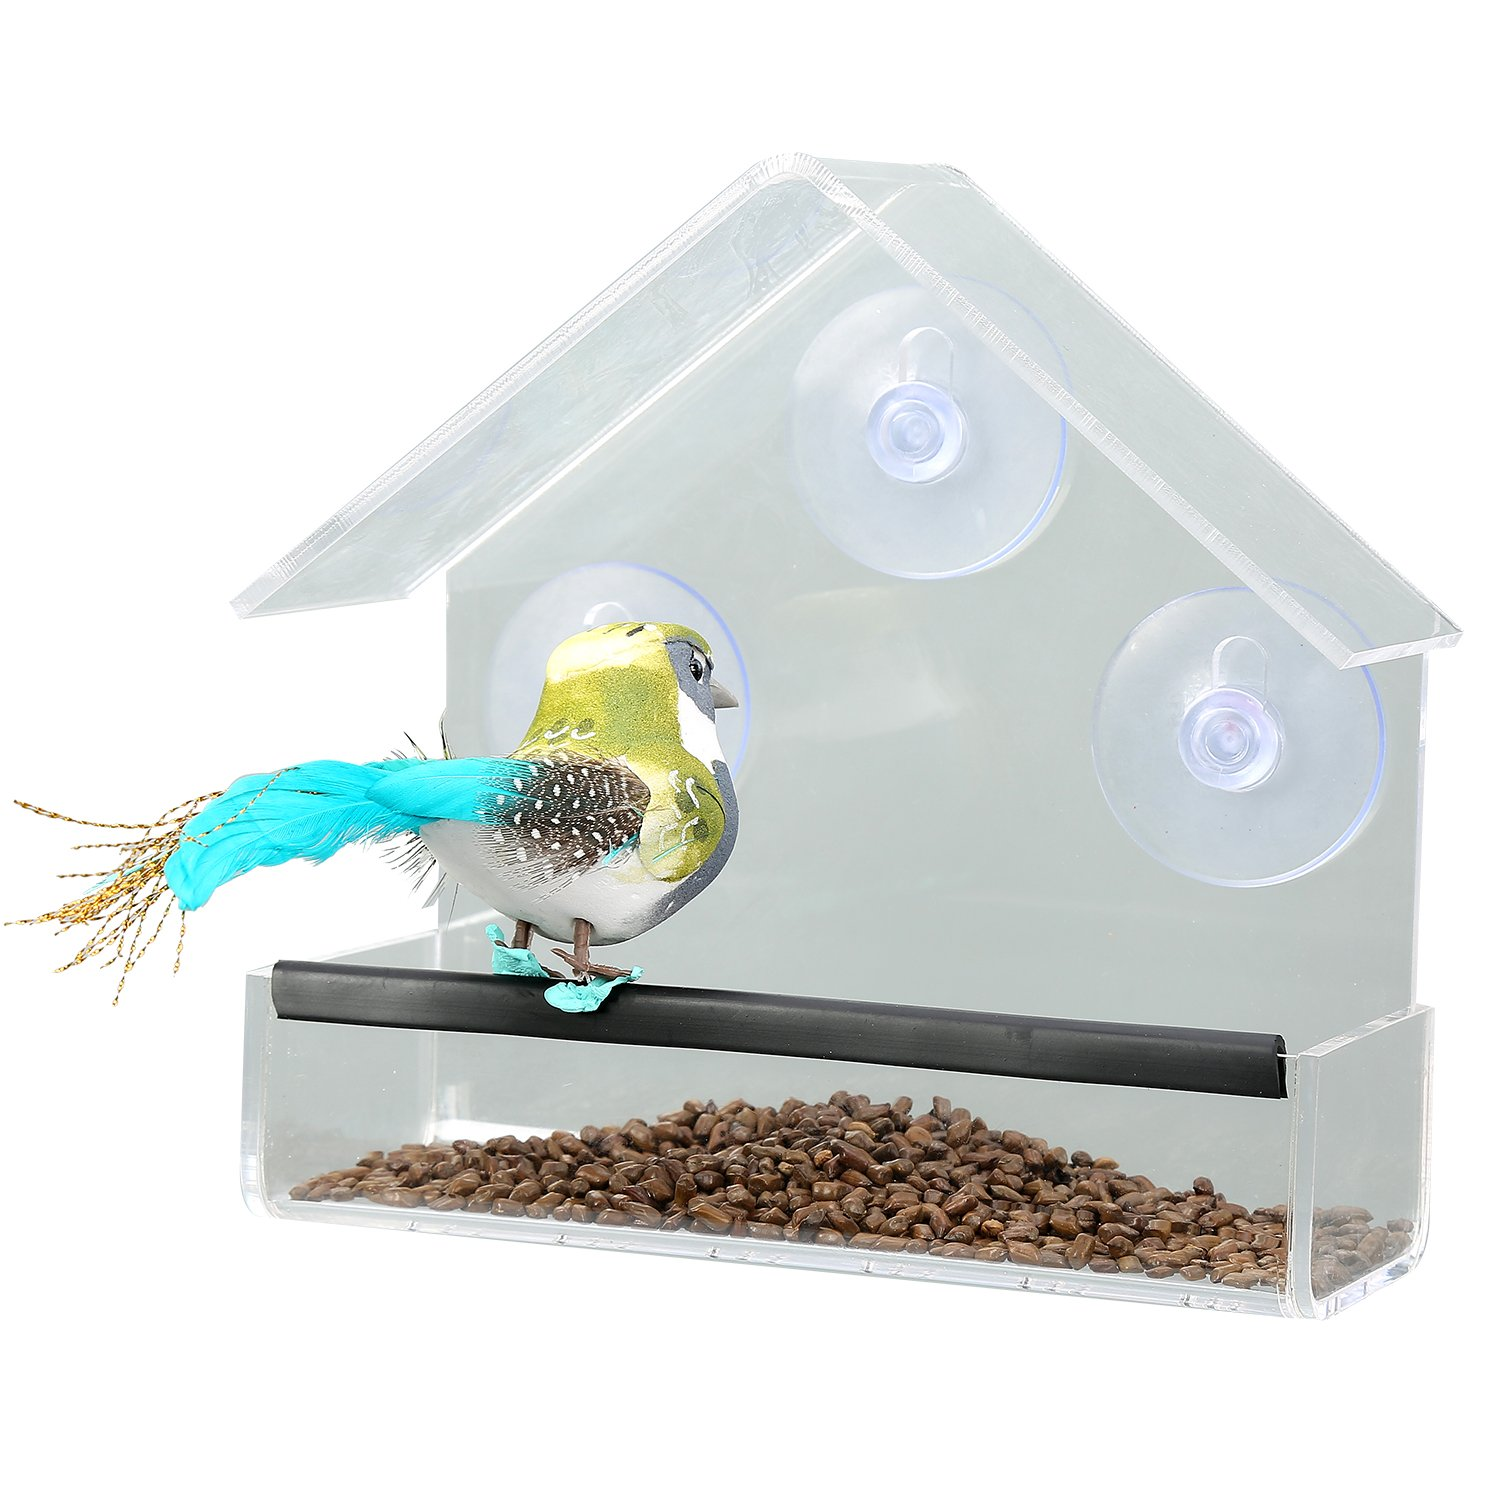 JDONOW Transparent Acrylic House Shape Window Bird Feeder with 3 Strong Suction Cups, Drain Holes,for Fun Educative Home Bird Watching,Guaranteed For All Weather